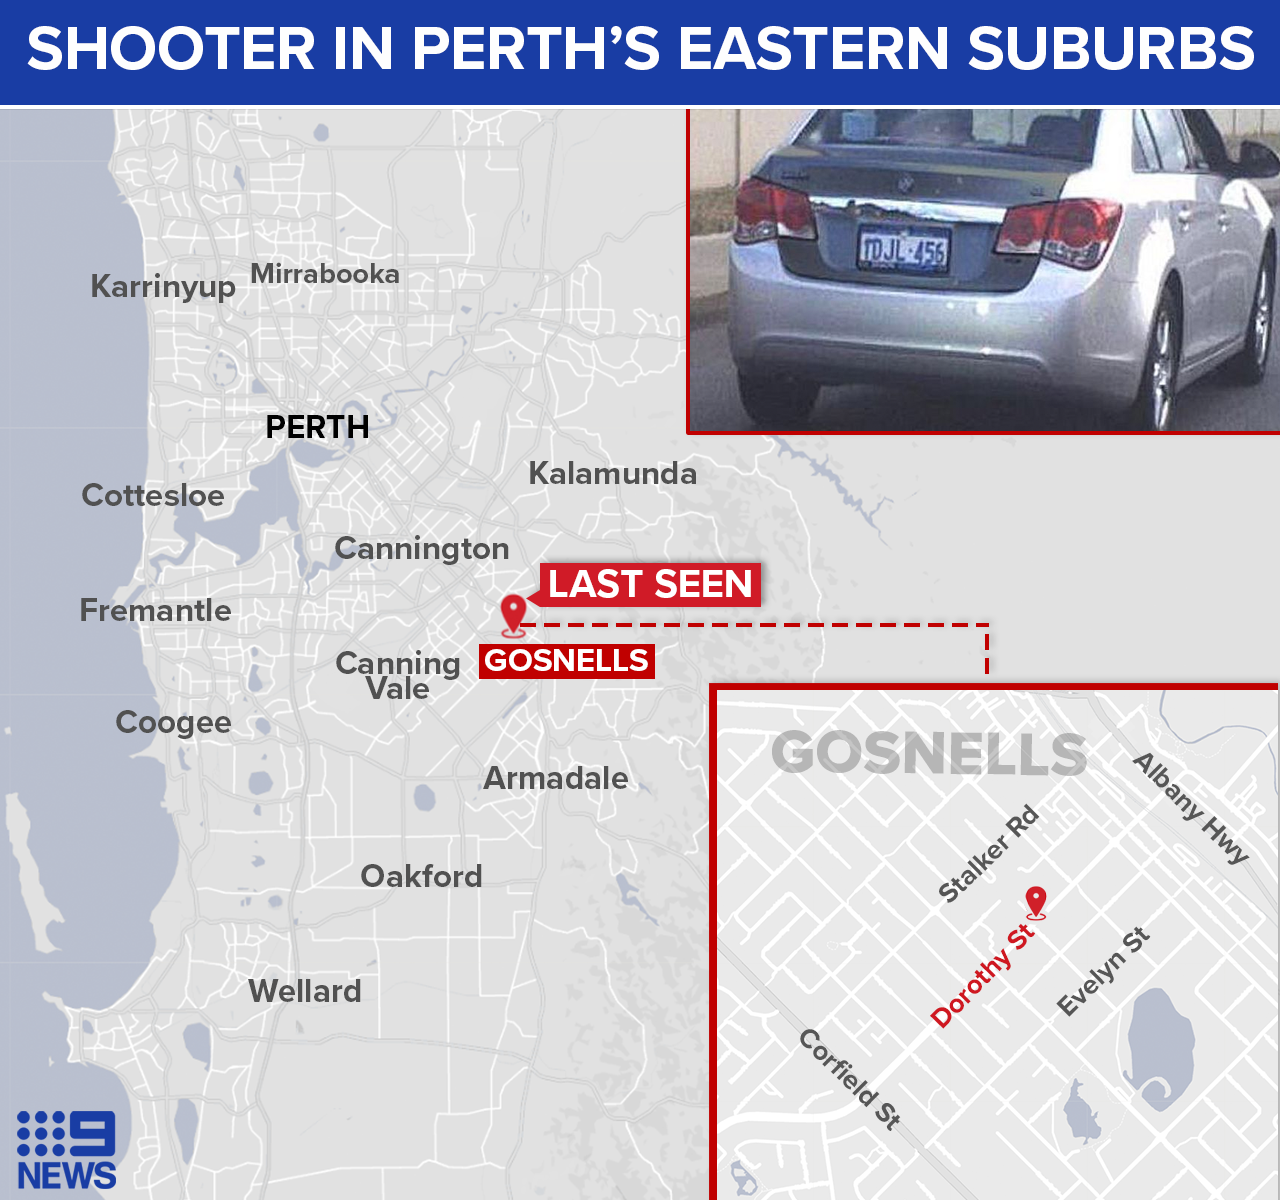 The car was last seen in Gosnells.